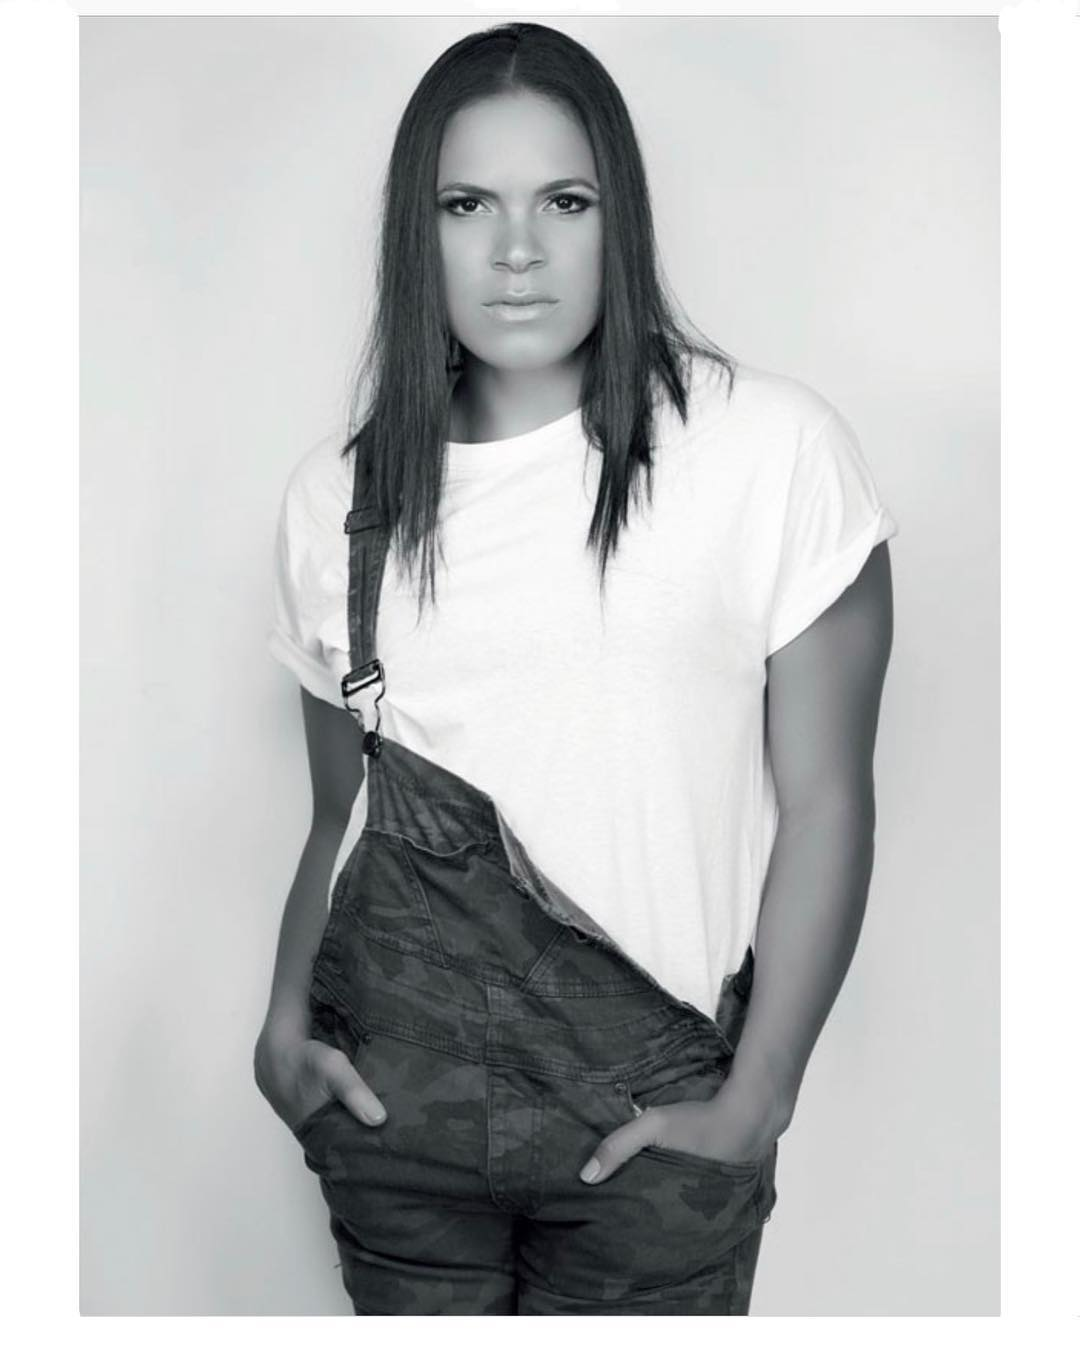 Amanda Nunes Photoshoot Photo